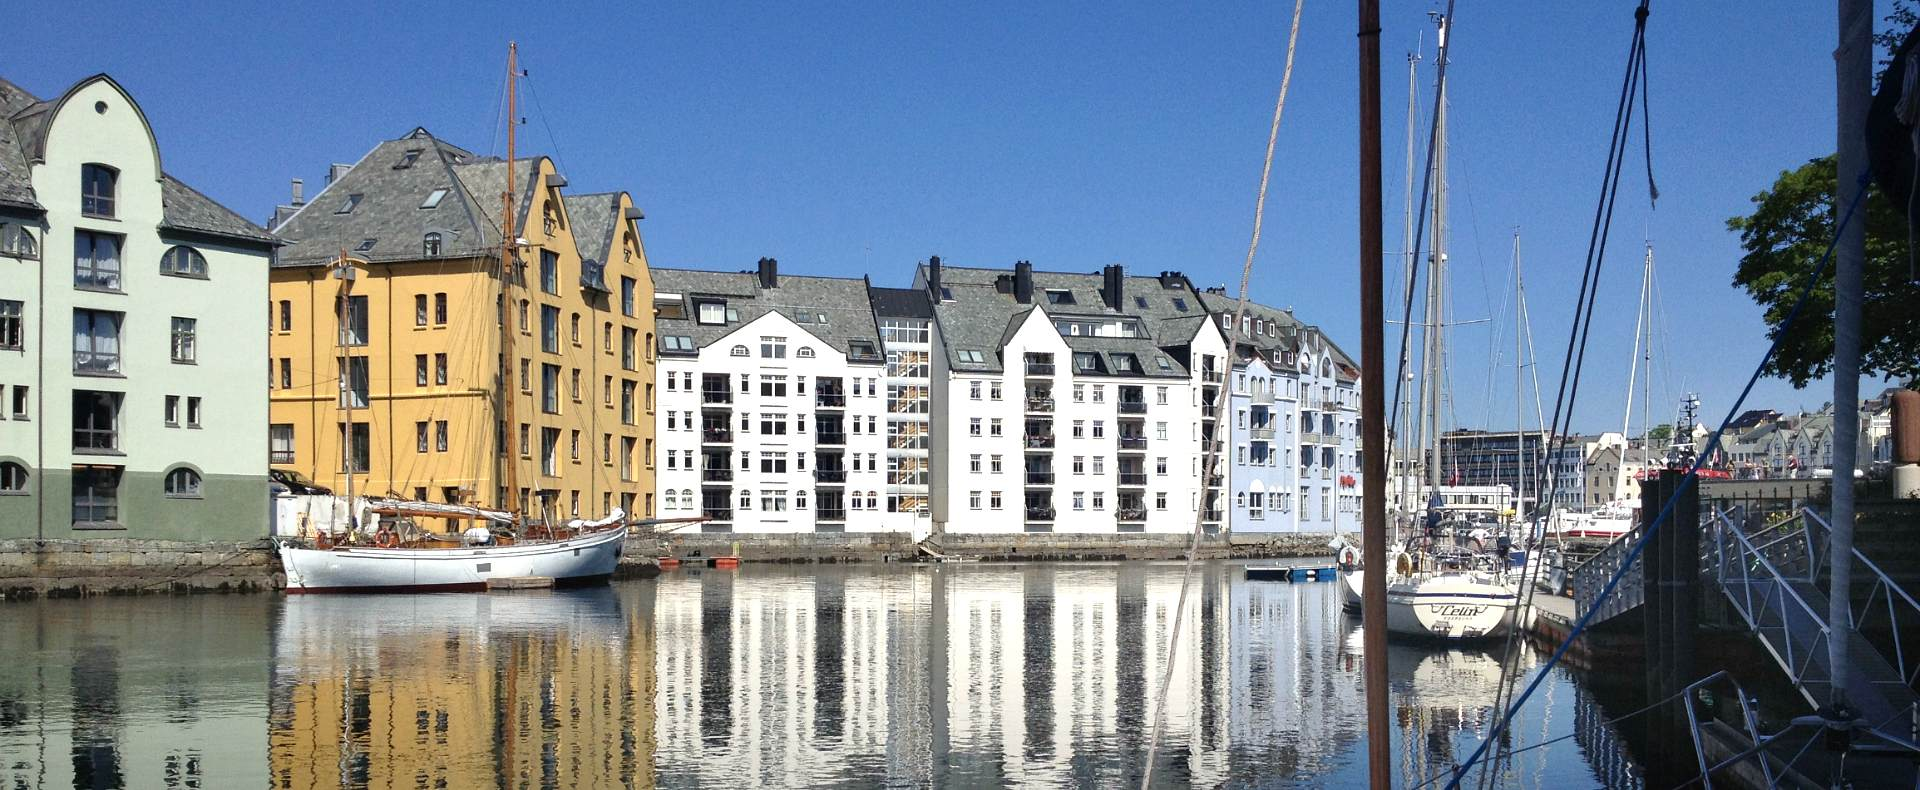 Alesund City Gallery